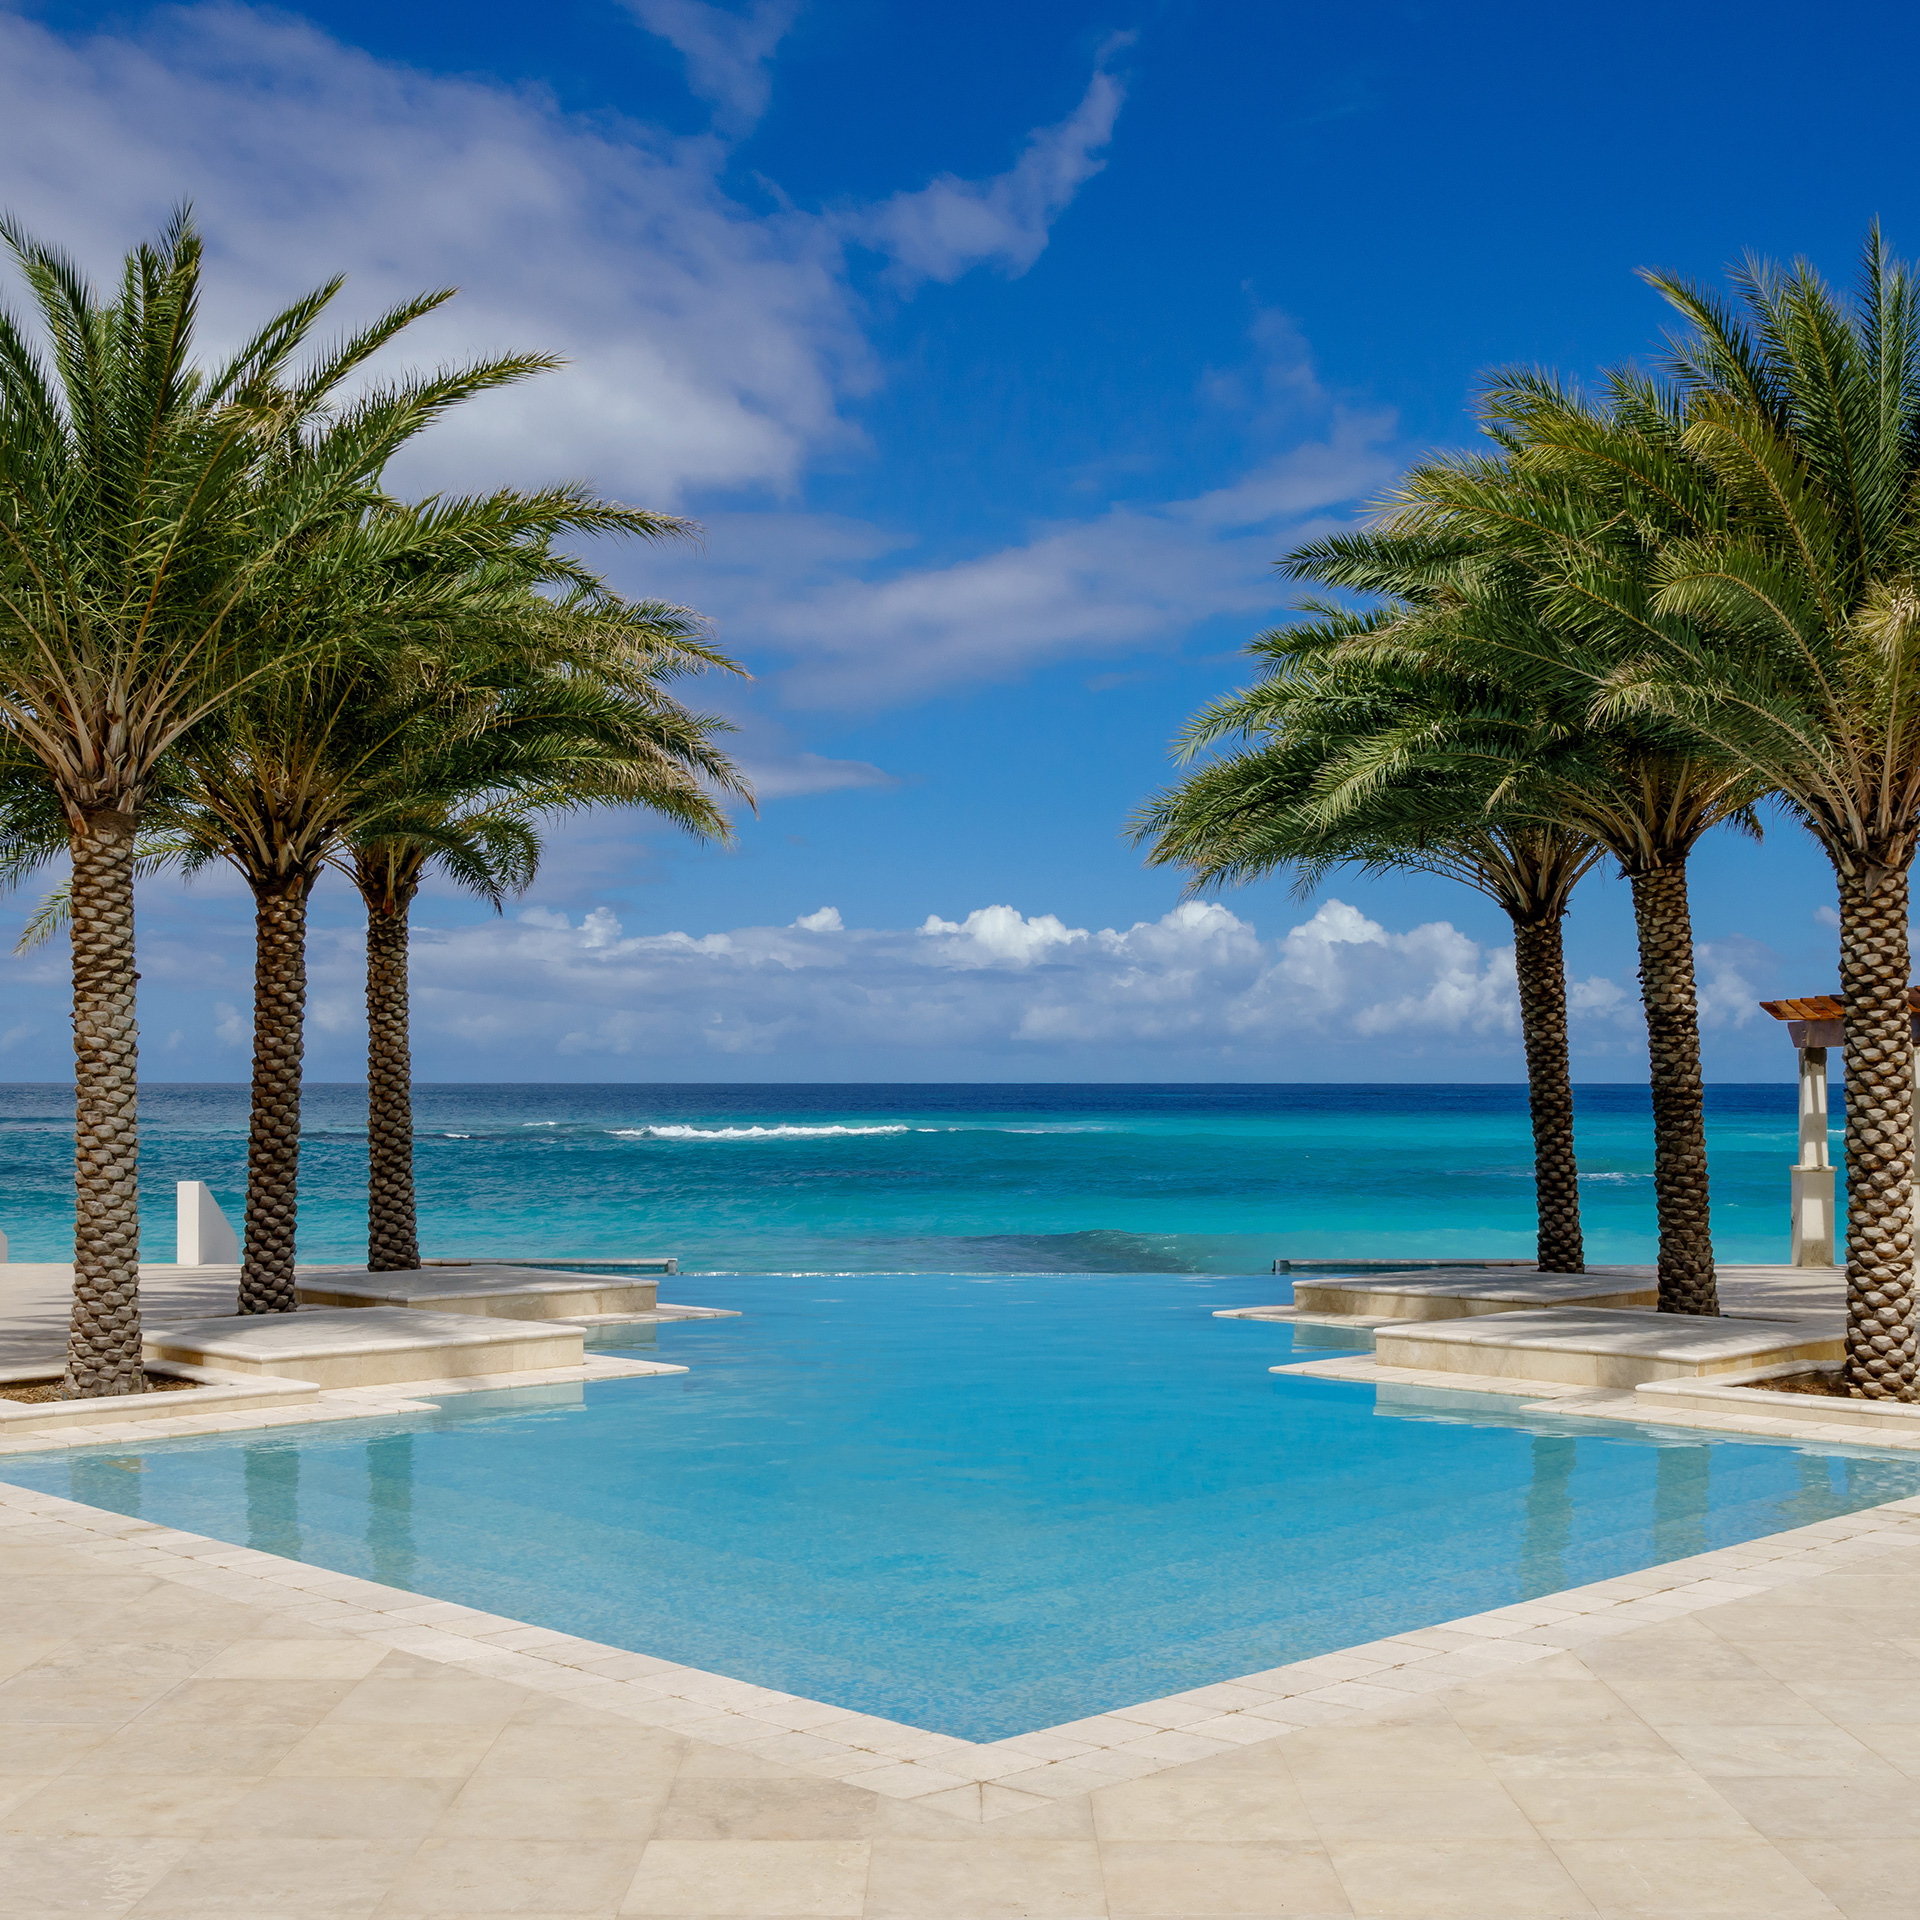 View of luxury Caribbean resort pool | Luxury Resort marketing | Zemi Beach